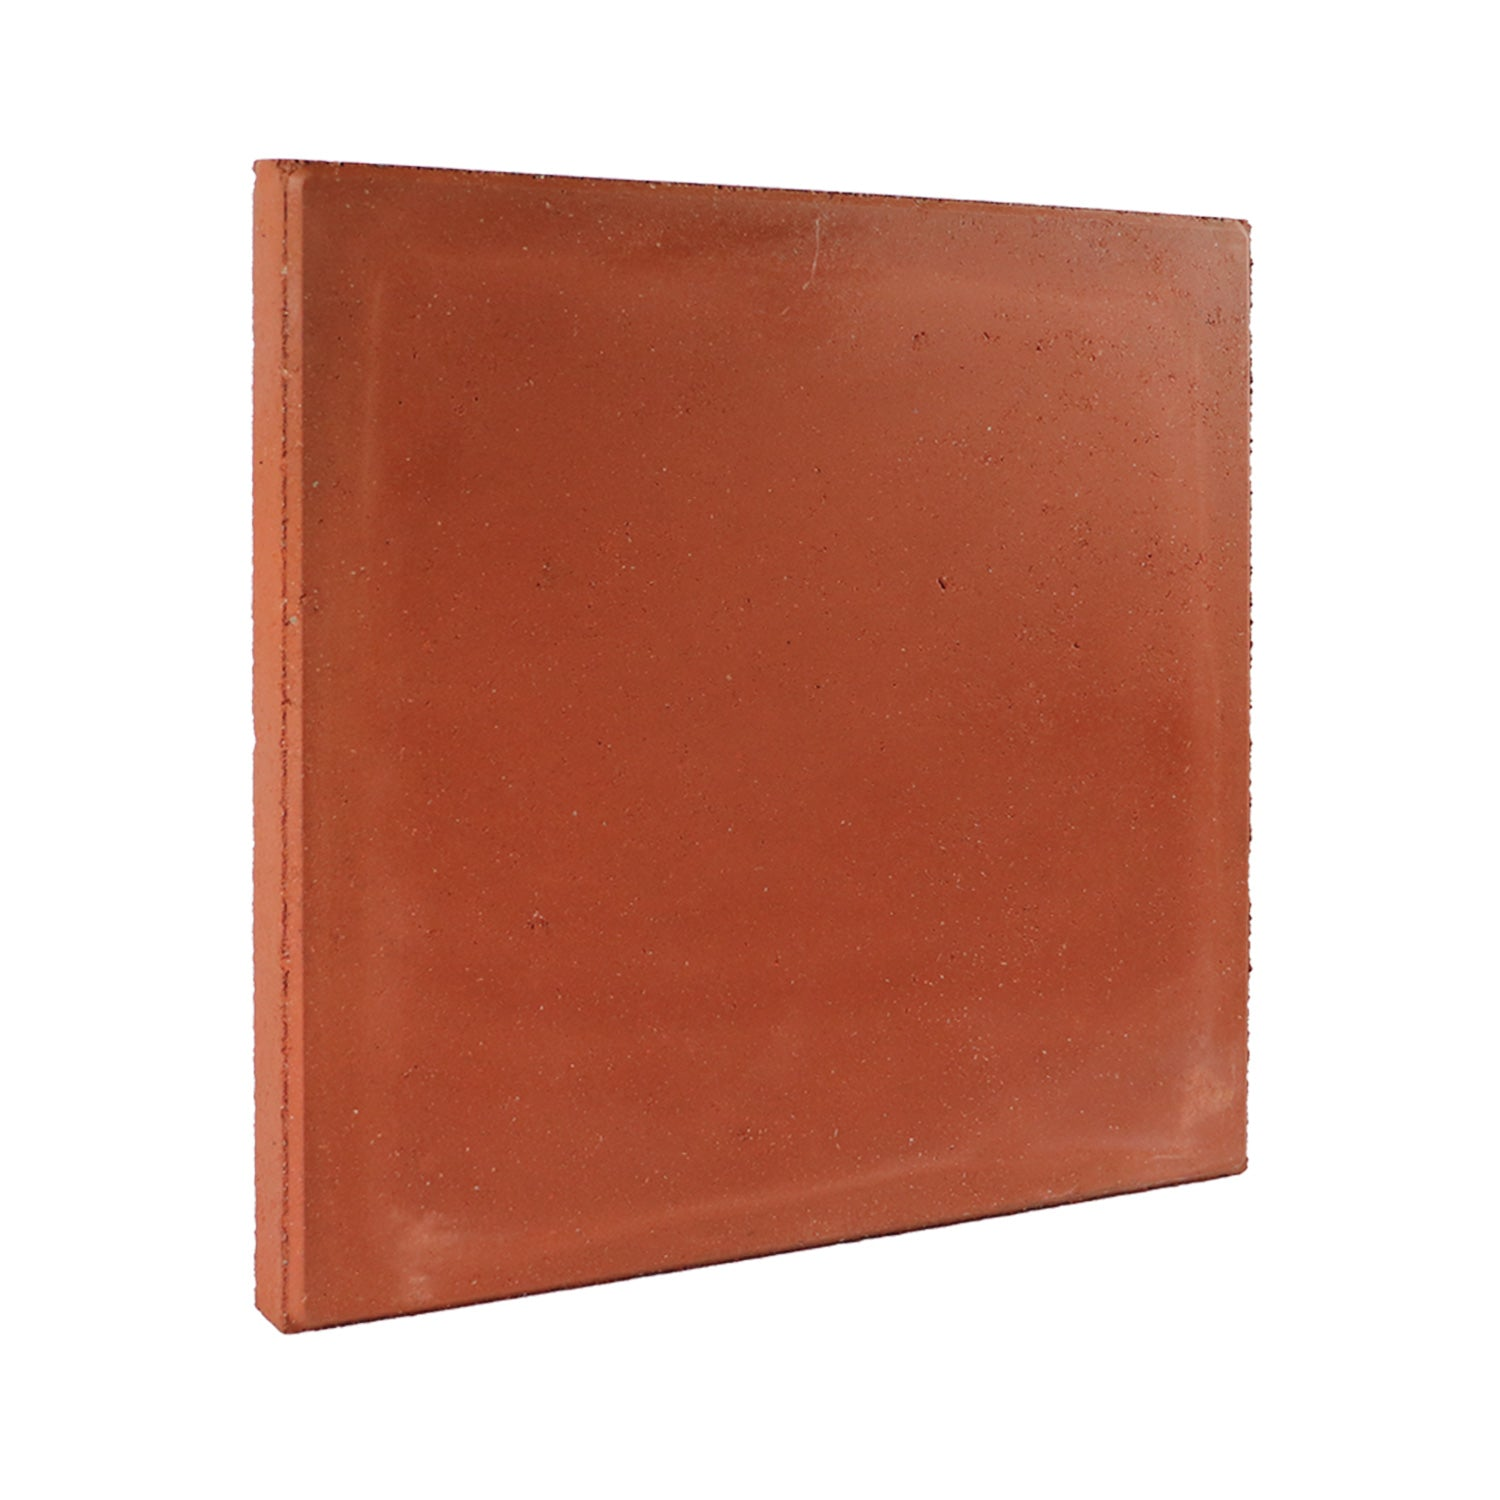 Village Stone Red Smooth 450mm x 450mm